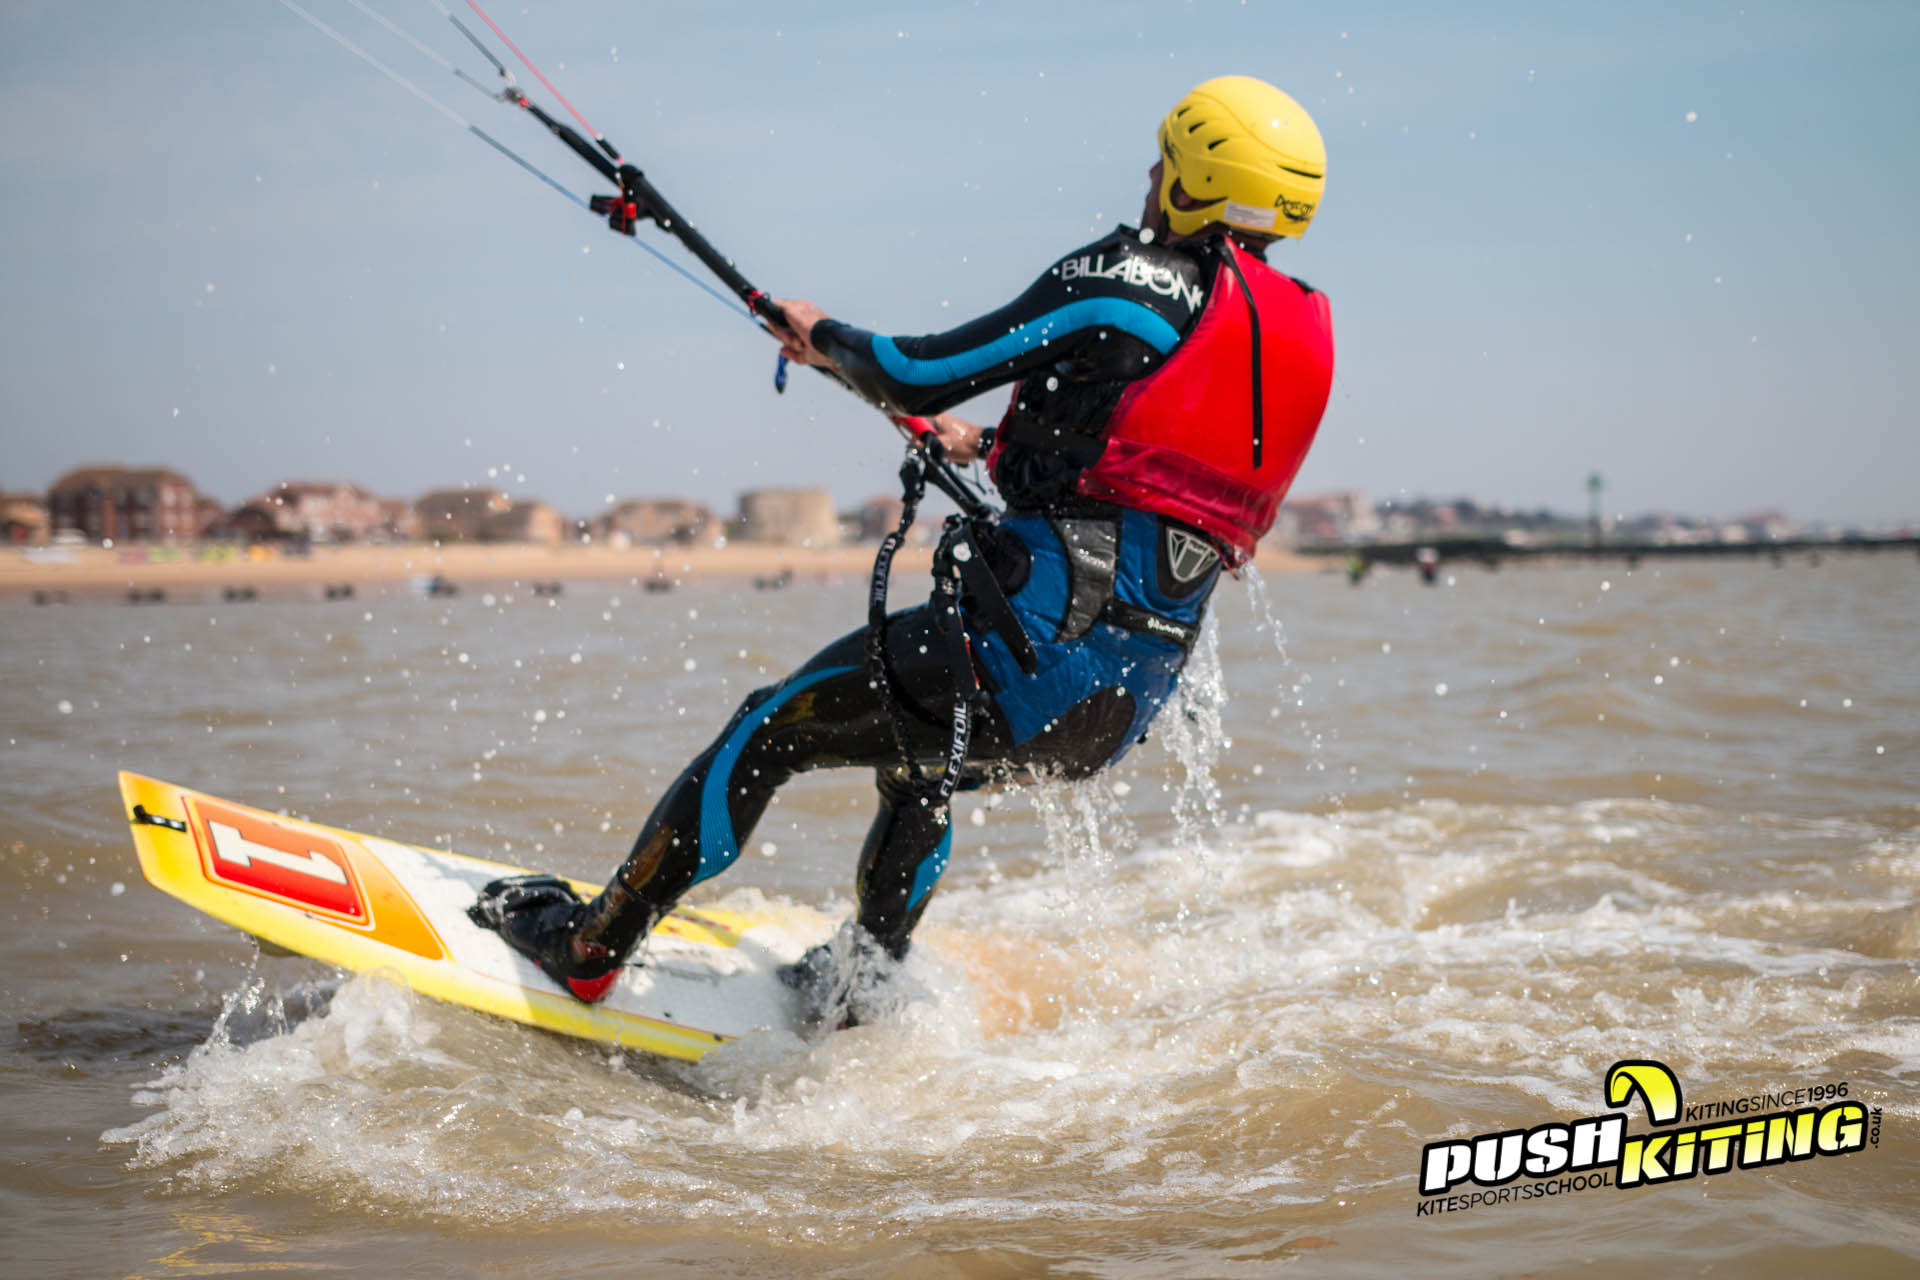 kite surfing lessons essex uk